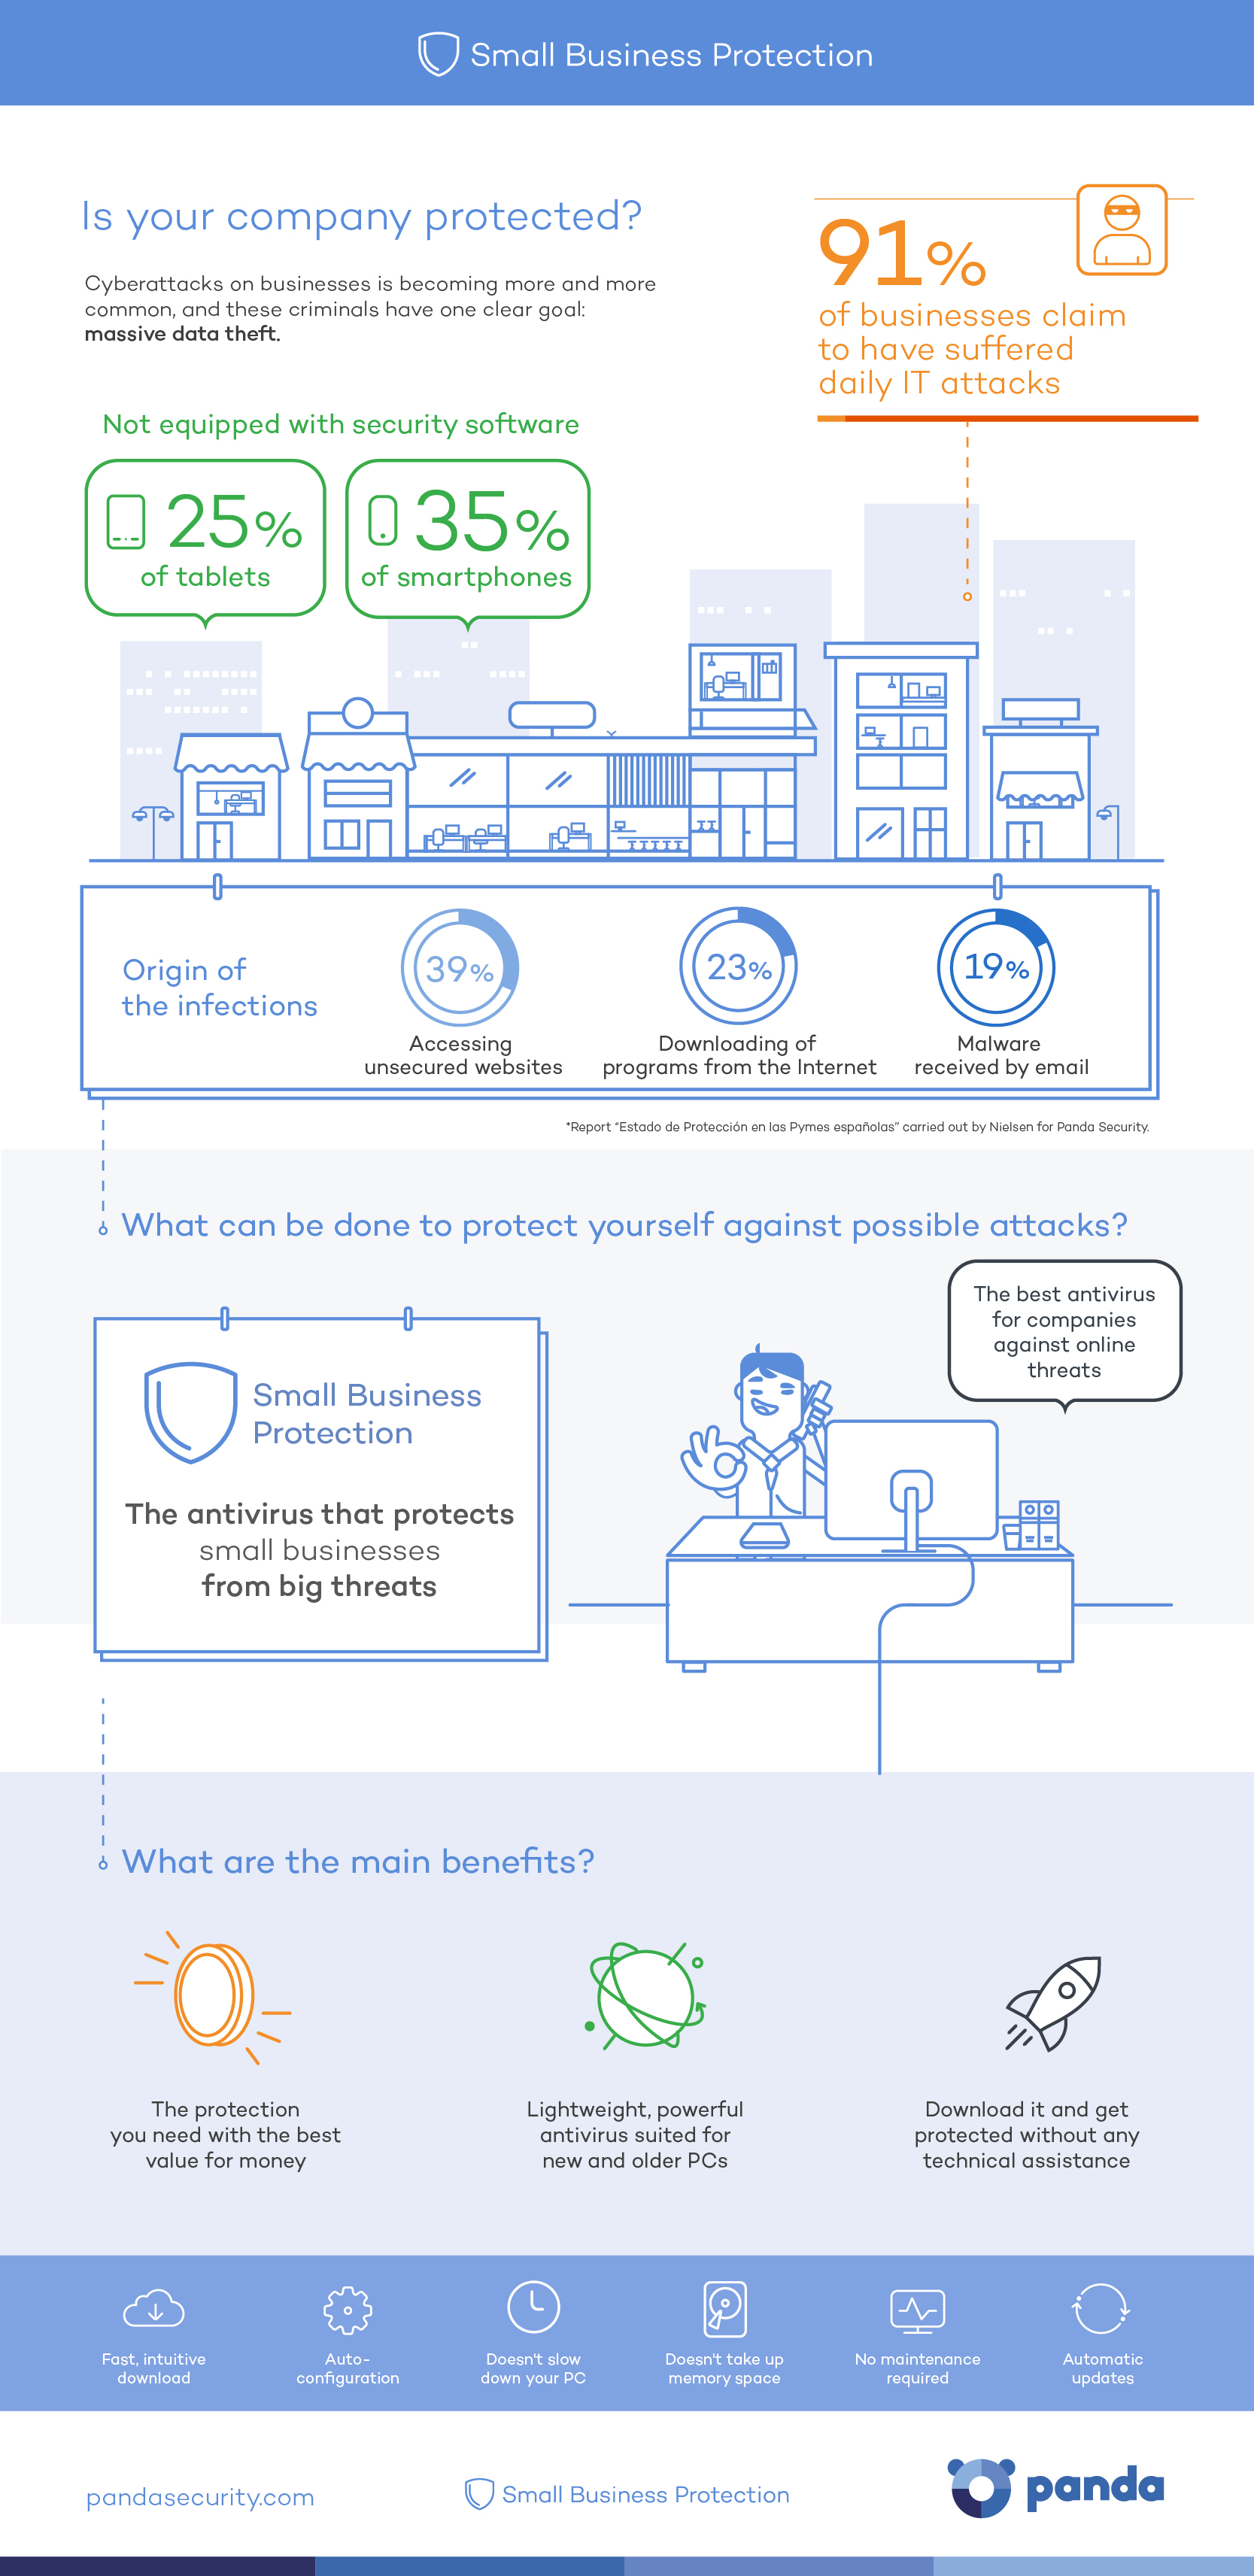 Small Business Protection - Panda Security Infographic